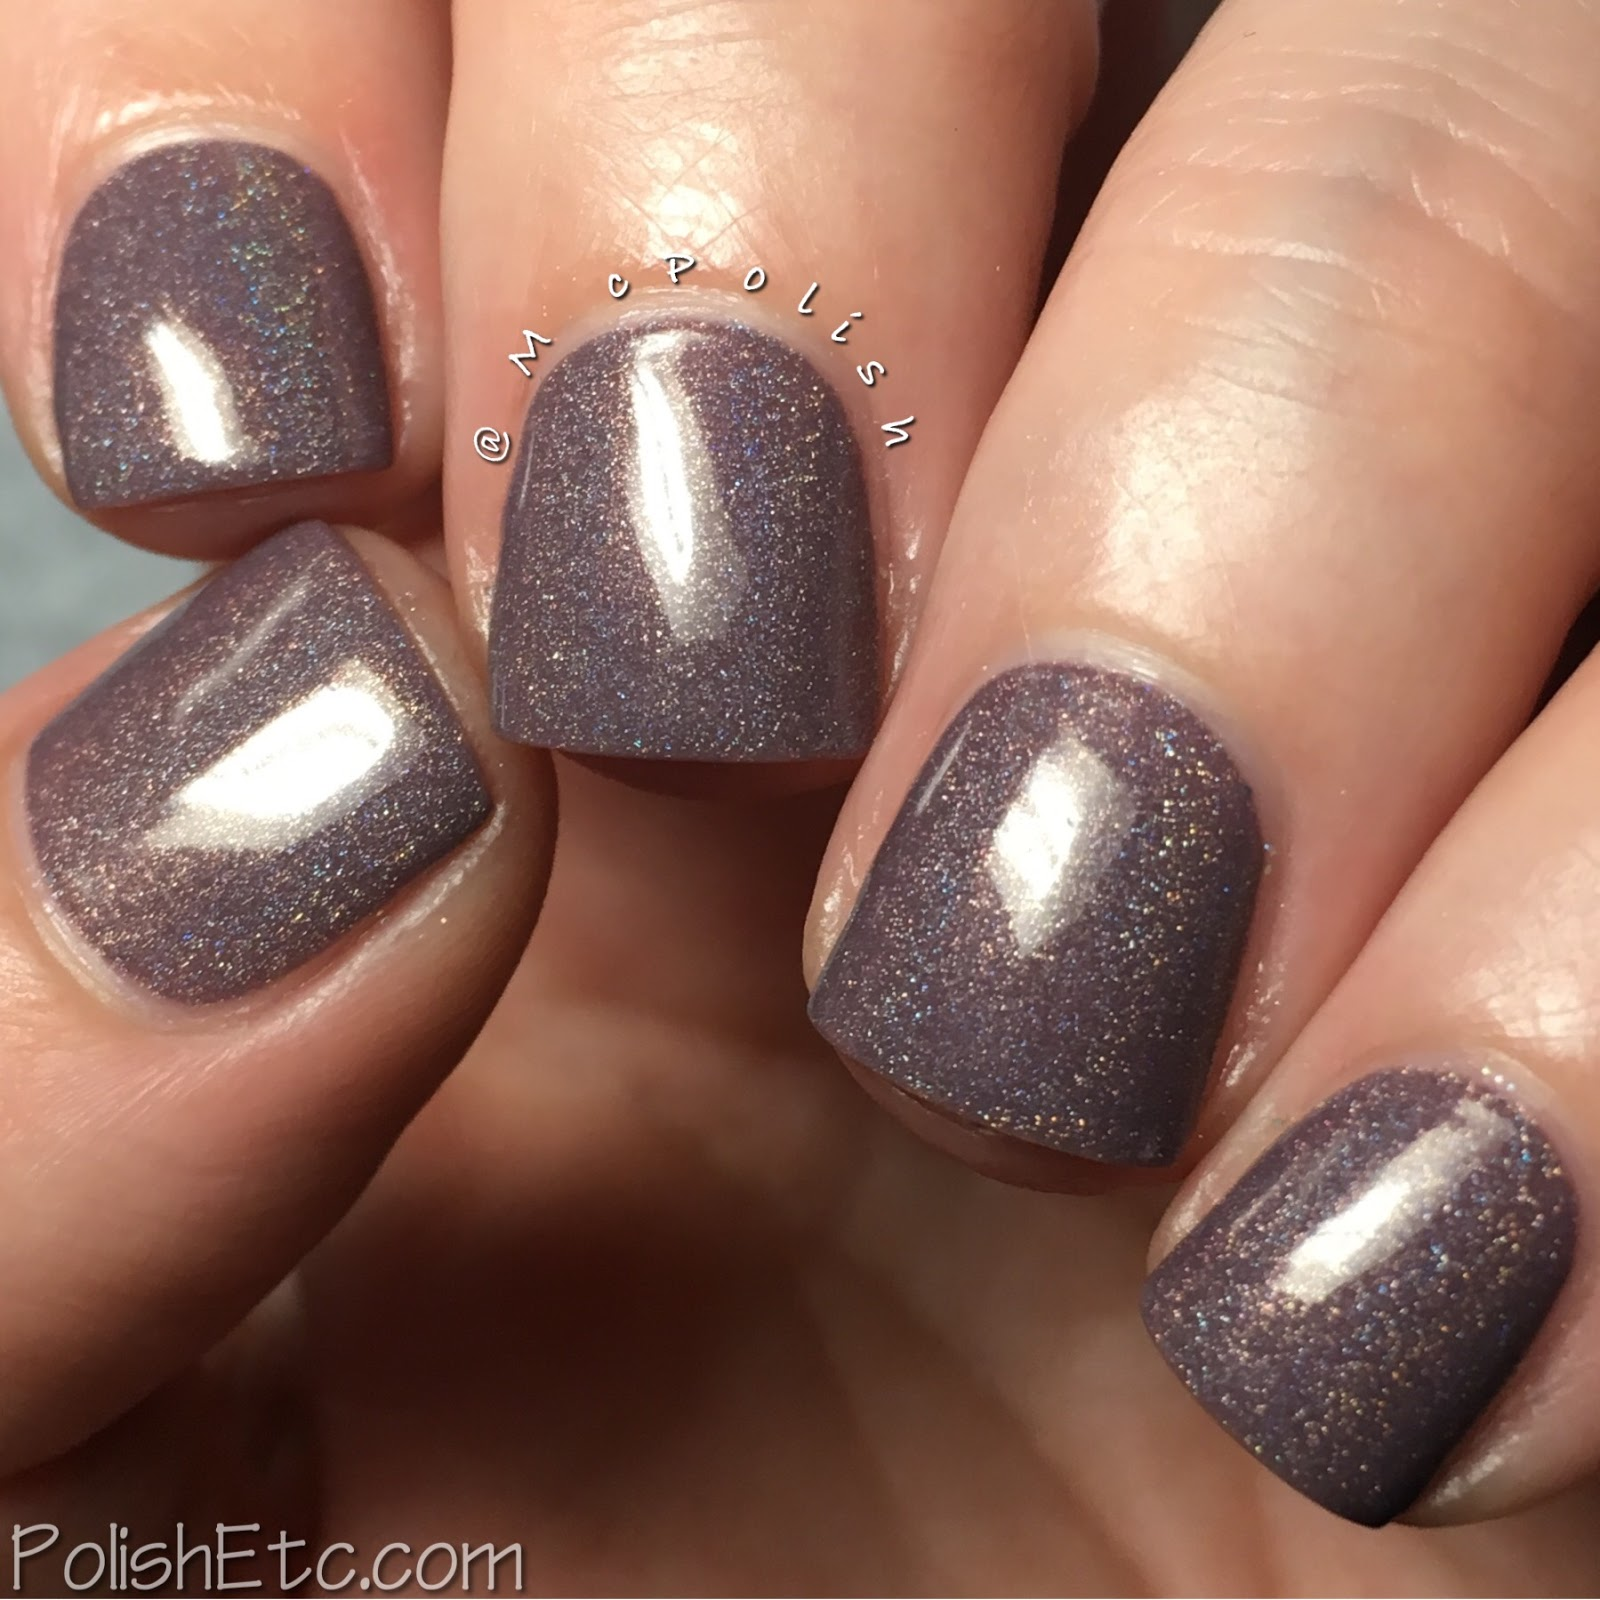 KBShimmer - Office Space Collection - McPolish - Cubicle Pusher